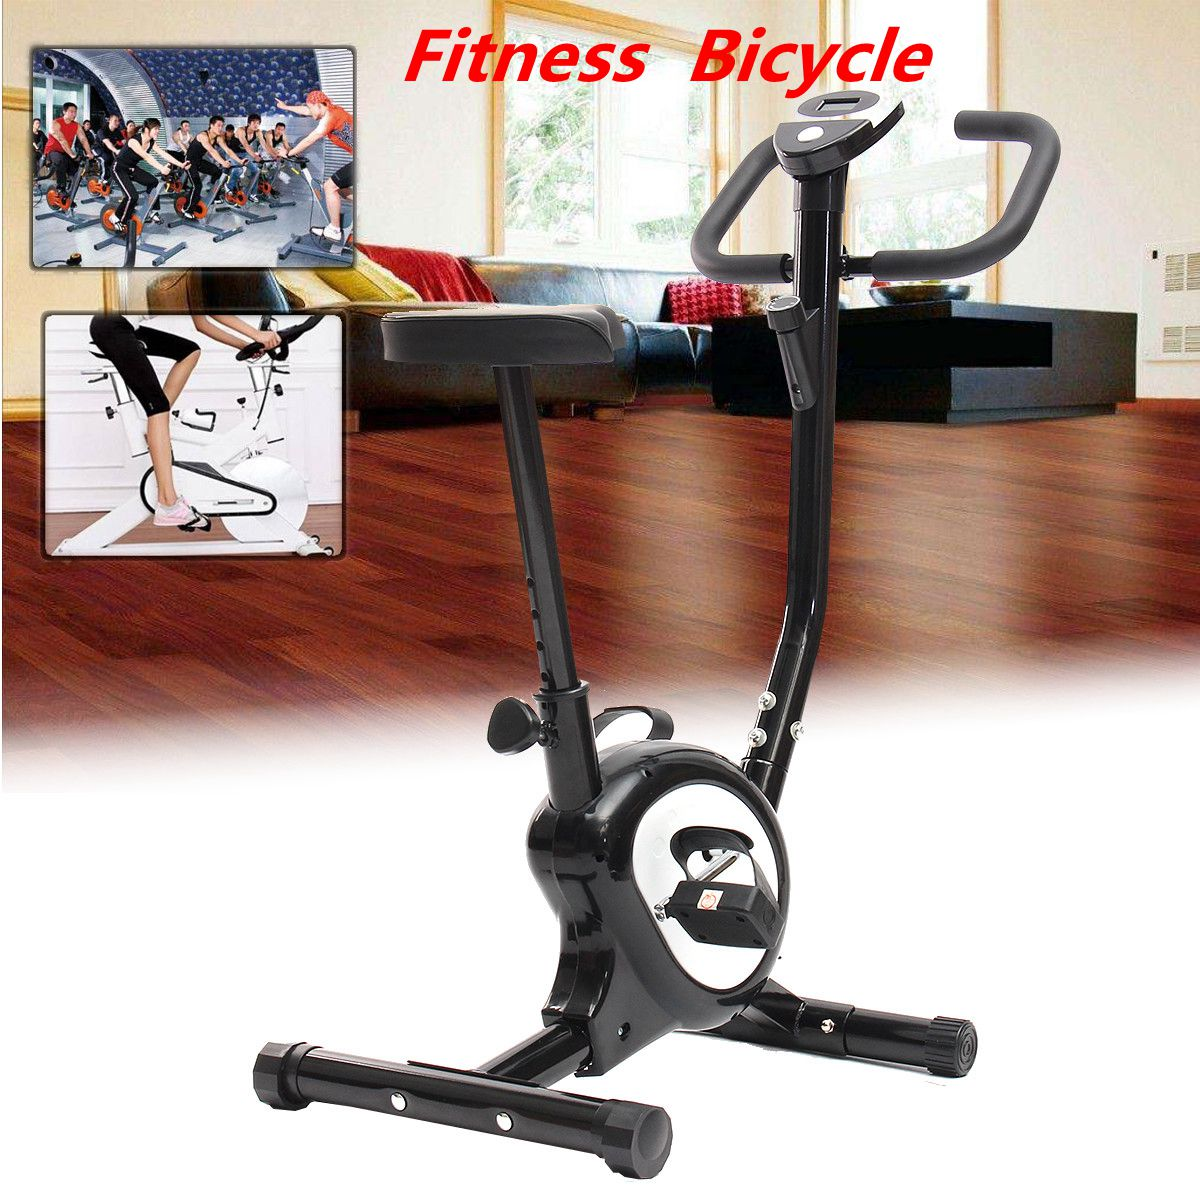 Exercise Spin Bike Home Gym Bicycle Cycling Cardio Fitness Training Workout Bike lose weight fitness equipment load Indoor rockbros bicycle trainer roller training tool road bike exercise fitness station mtb bike trainer tool station 3 stage folding